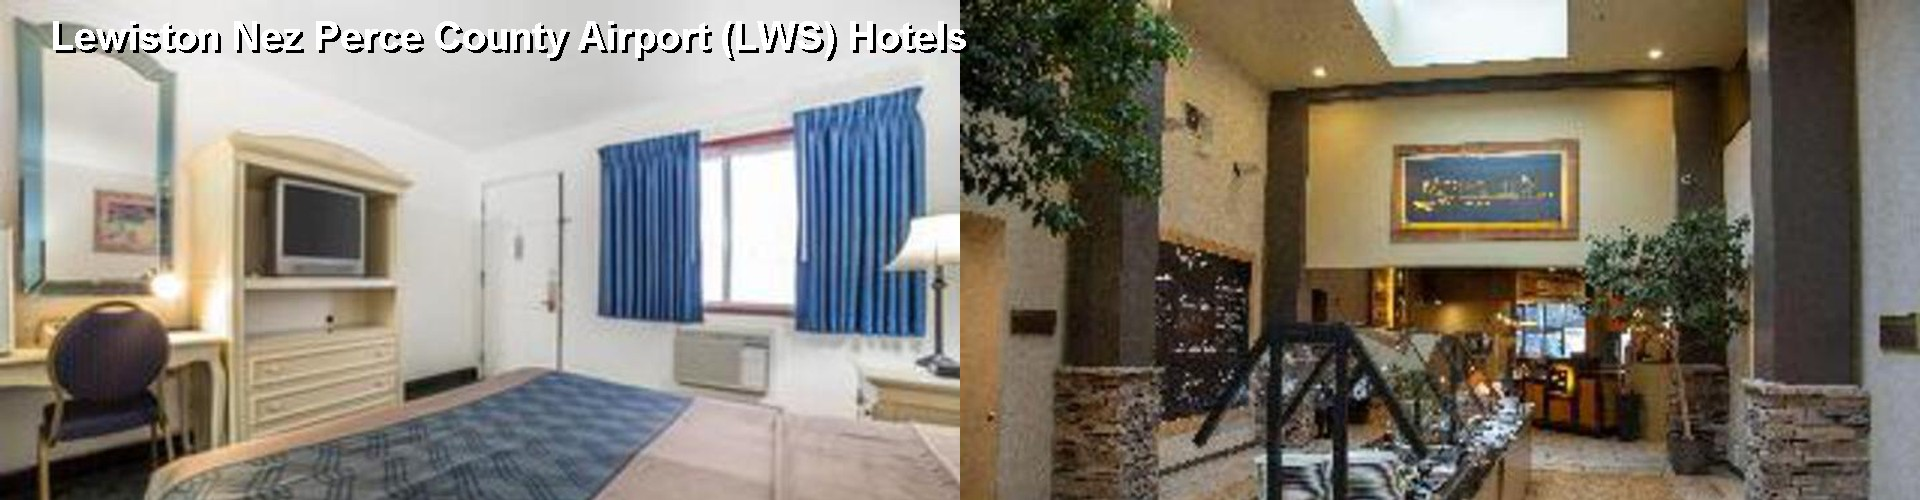 5 Best Hotels near Lewiston Nez Perce County Airport (LWS)